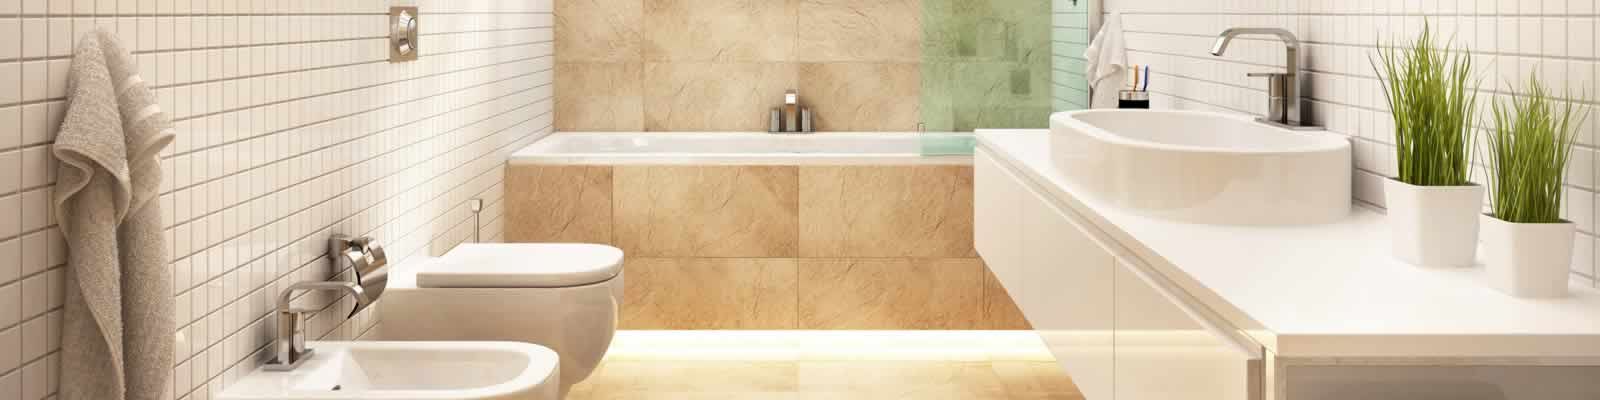 Building services and bathroom installation in Cricklewood